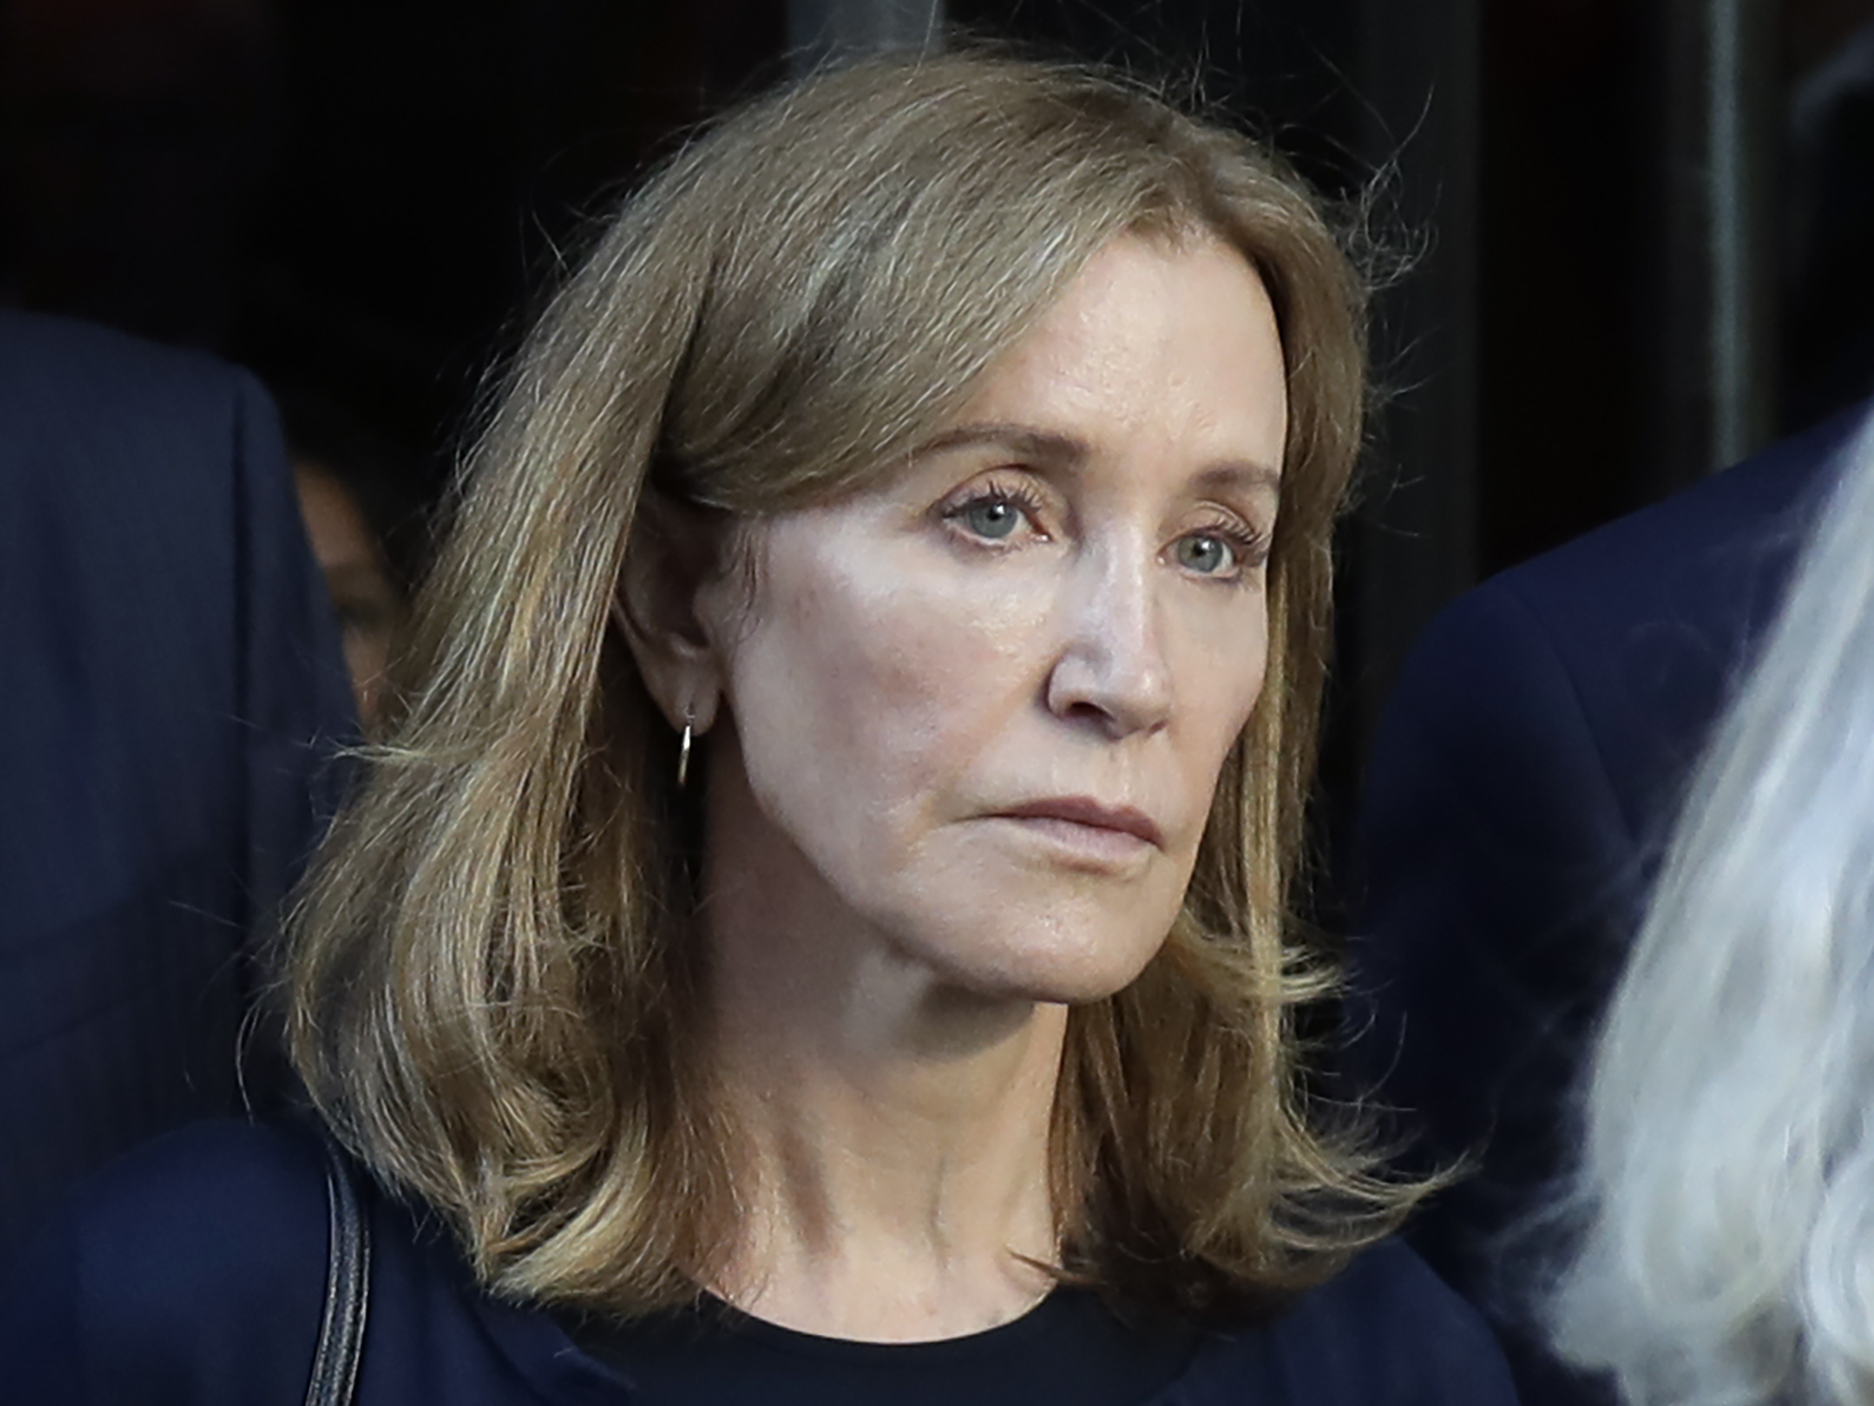 Felicity Huffman Begins 14-Day Prison Term In College Admissions Scandal